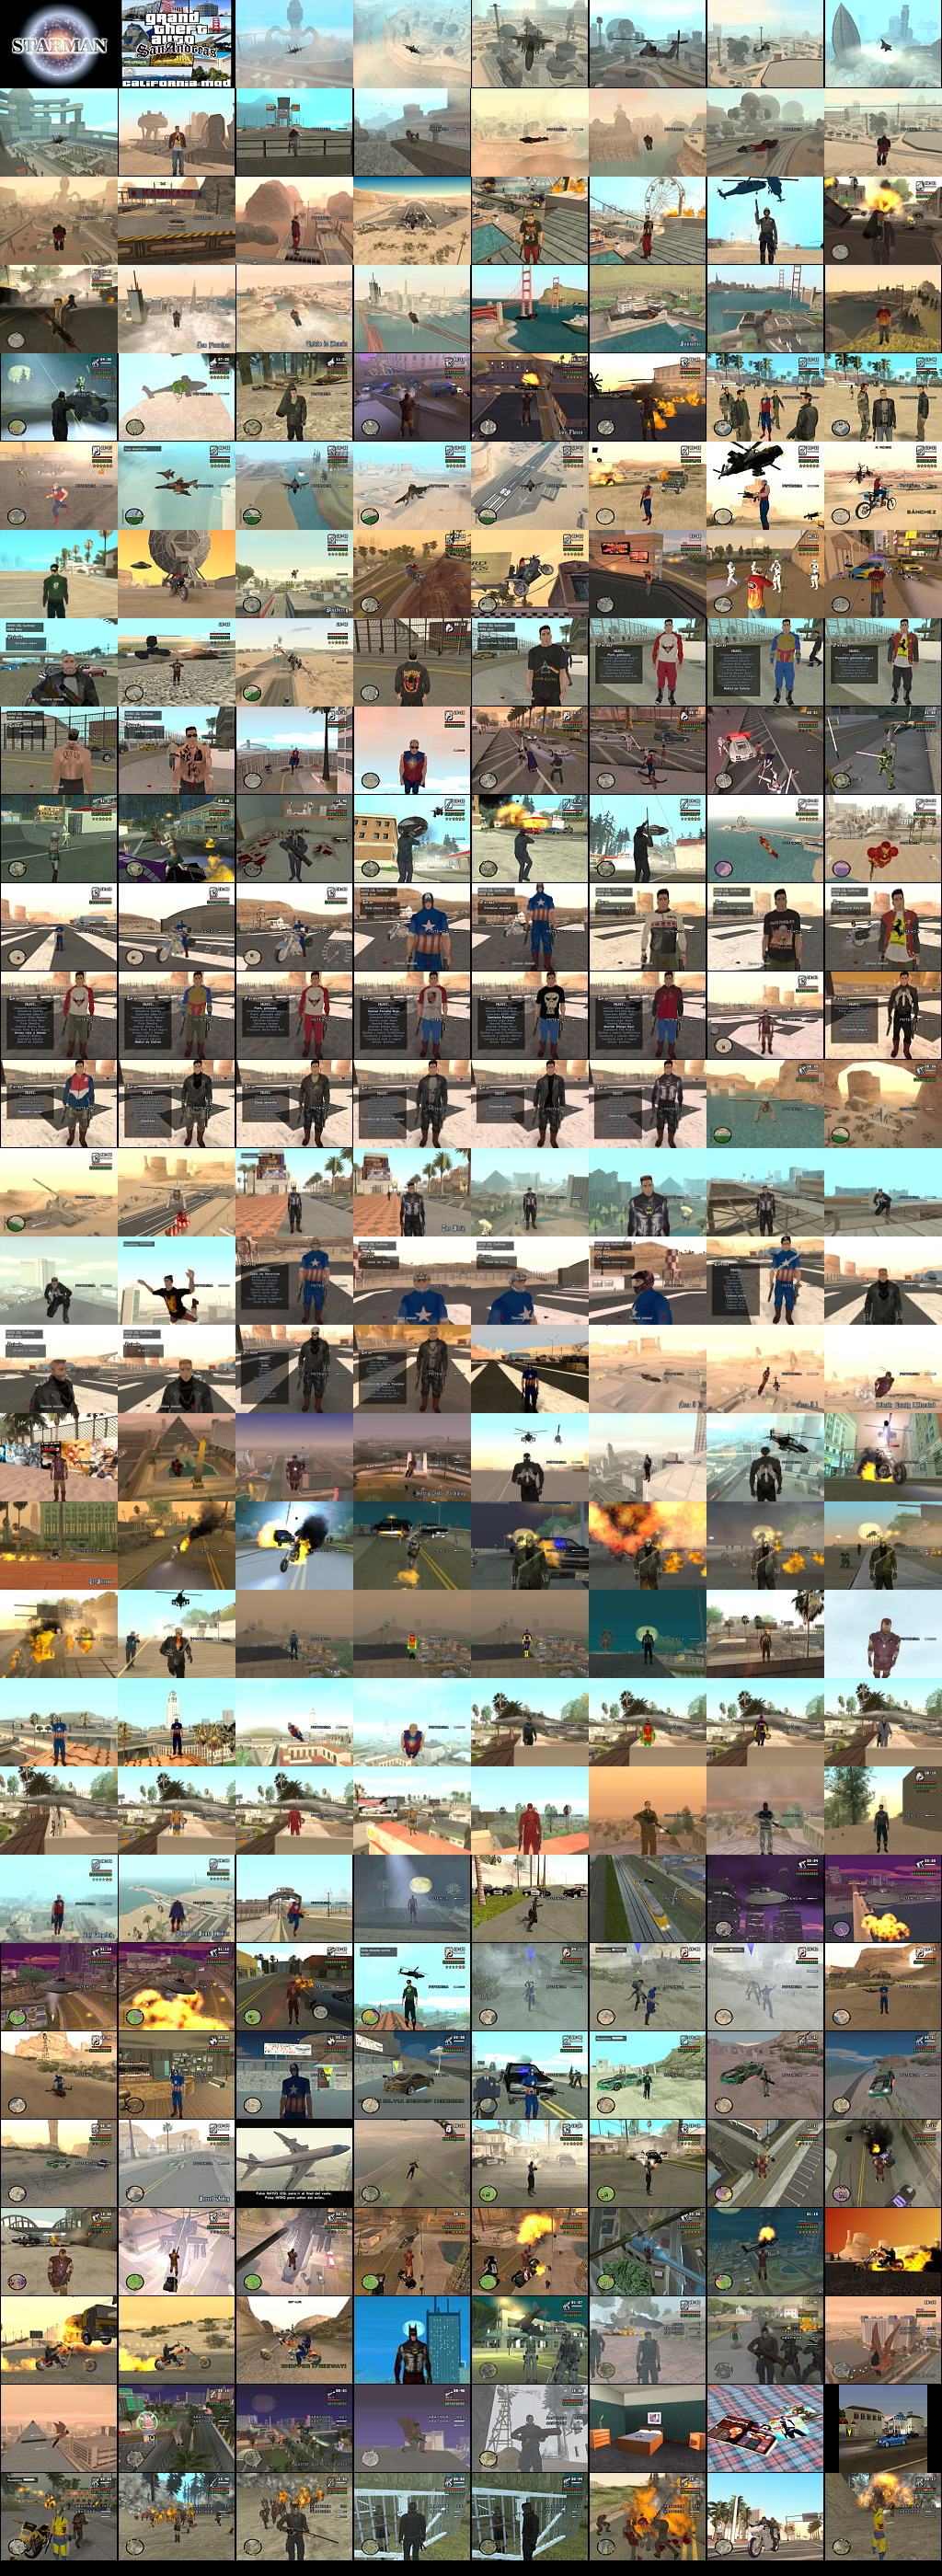 click for full size image of  thumbnails from california megamod 1.51